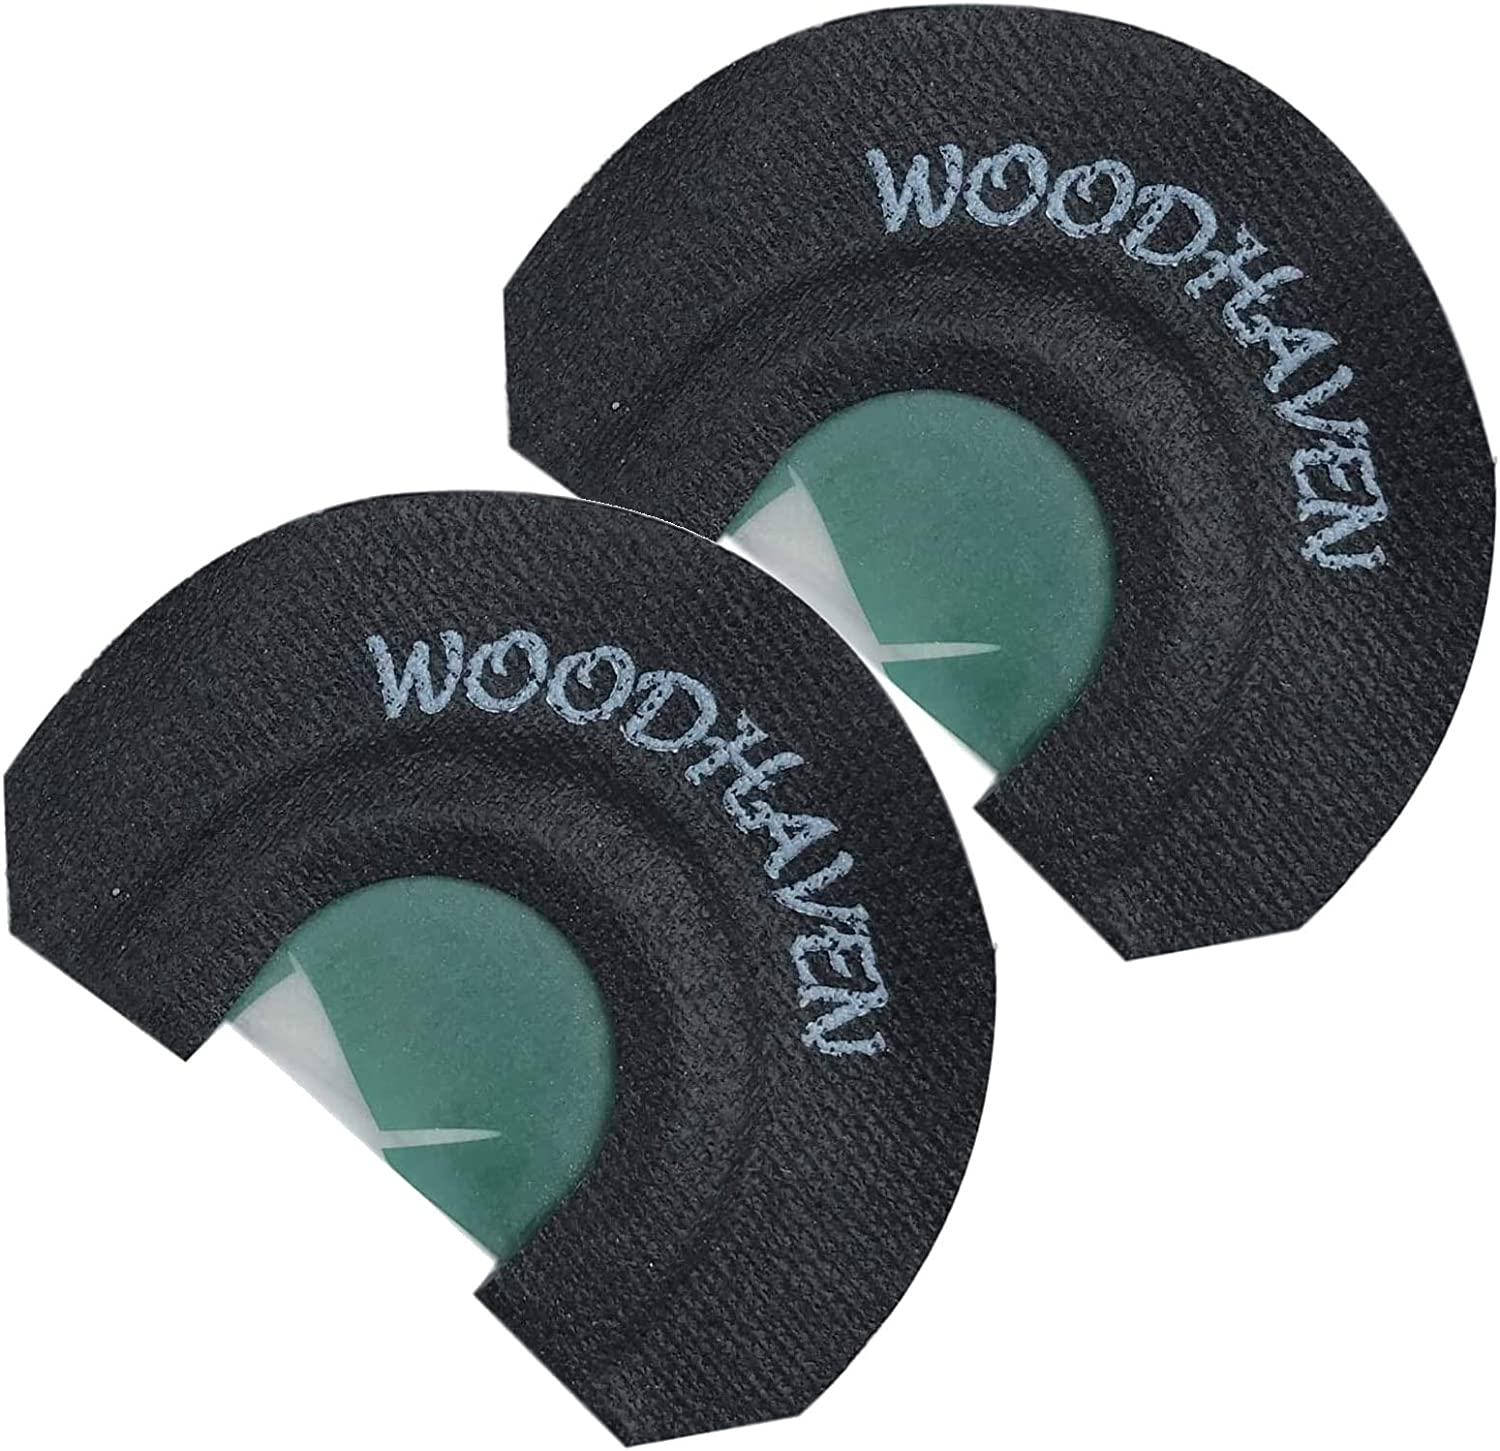 Woodhaven WH095 Ninja Venom Turkey Hunting Game Mouth Call for sale online